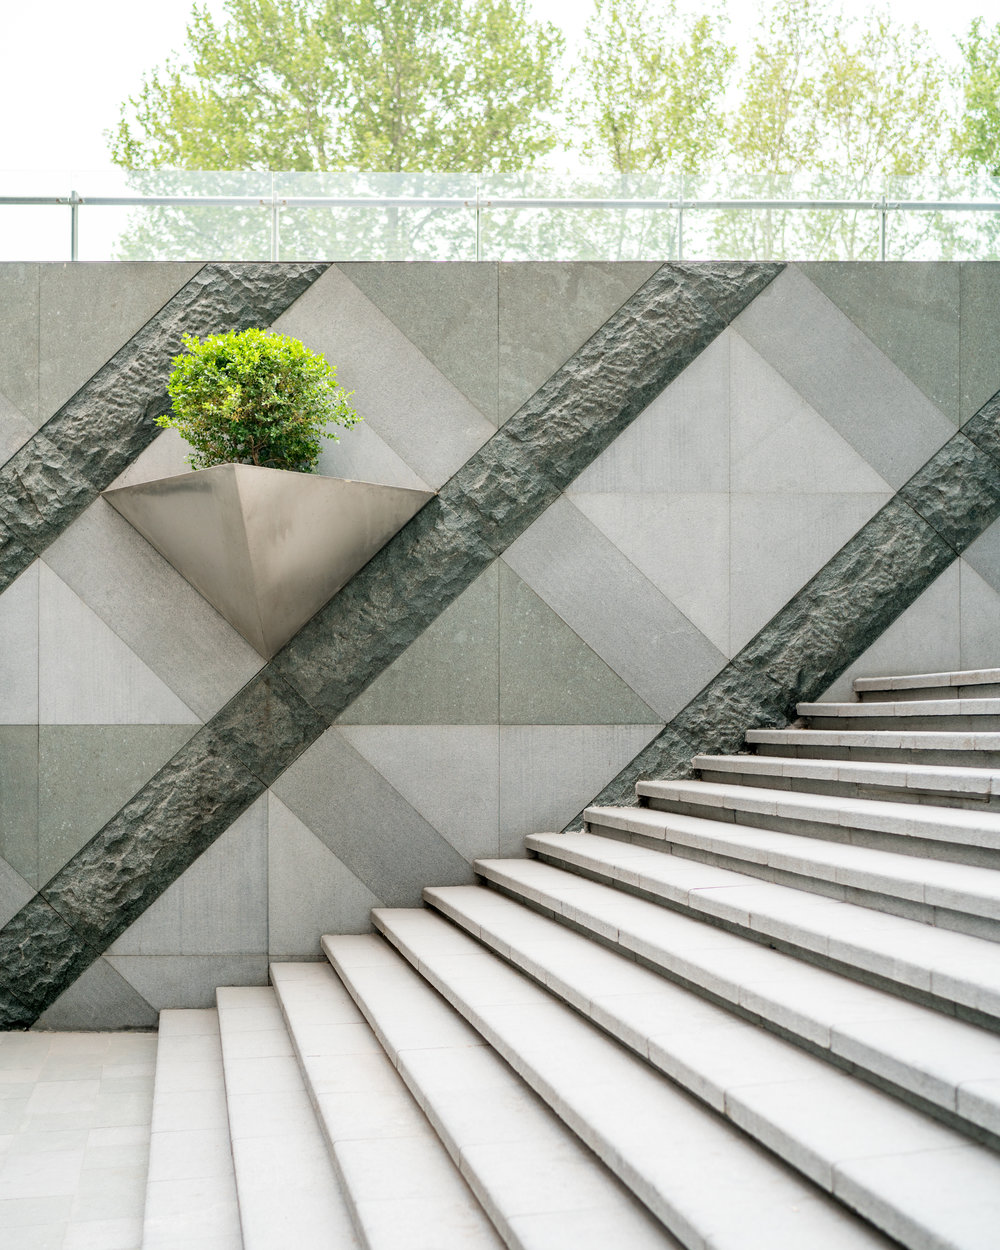 Architectural Details in Stone